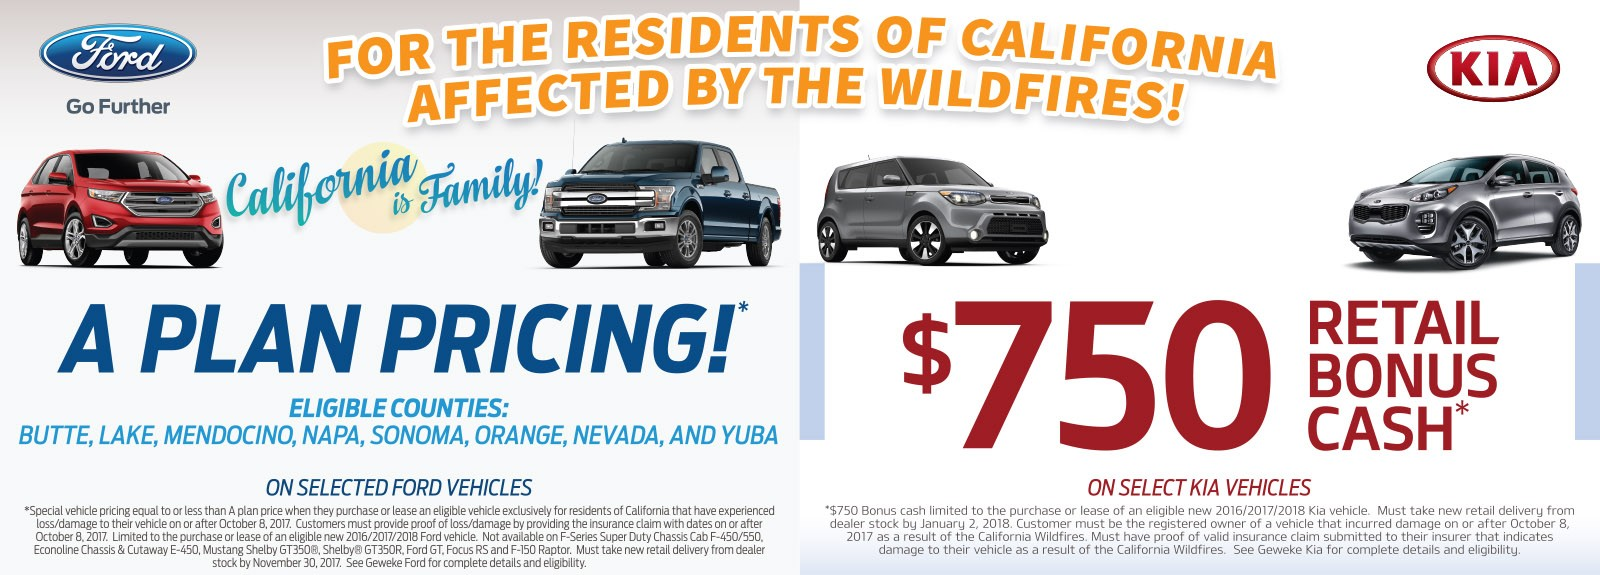 Ford and Kia Incentives for the residents of California affected by the wildfires!